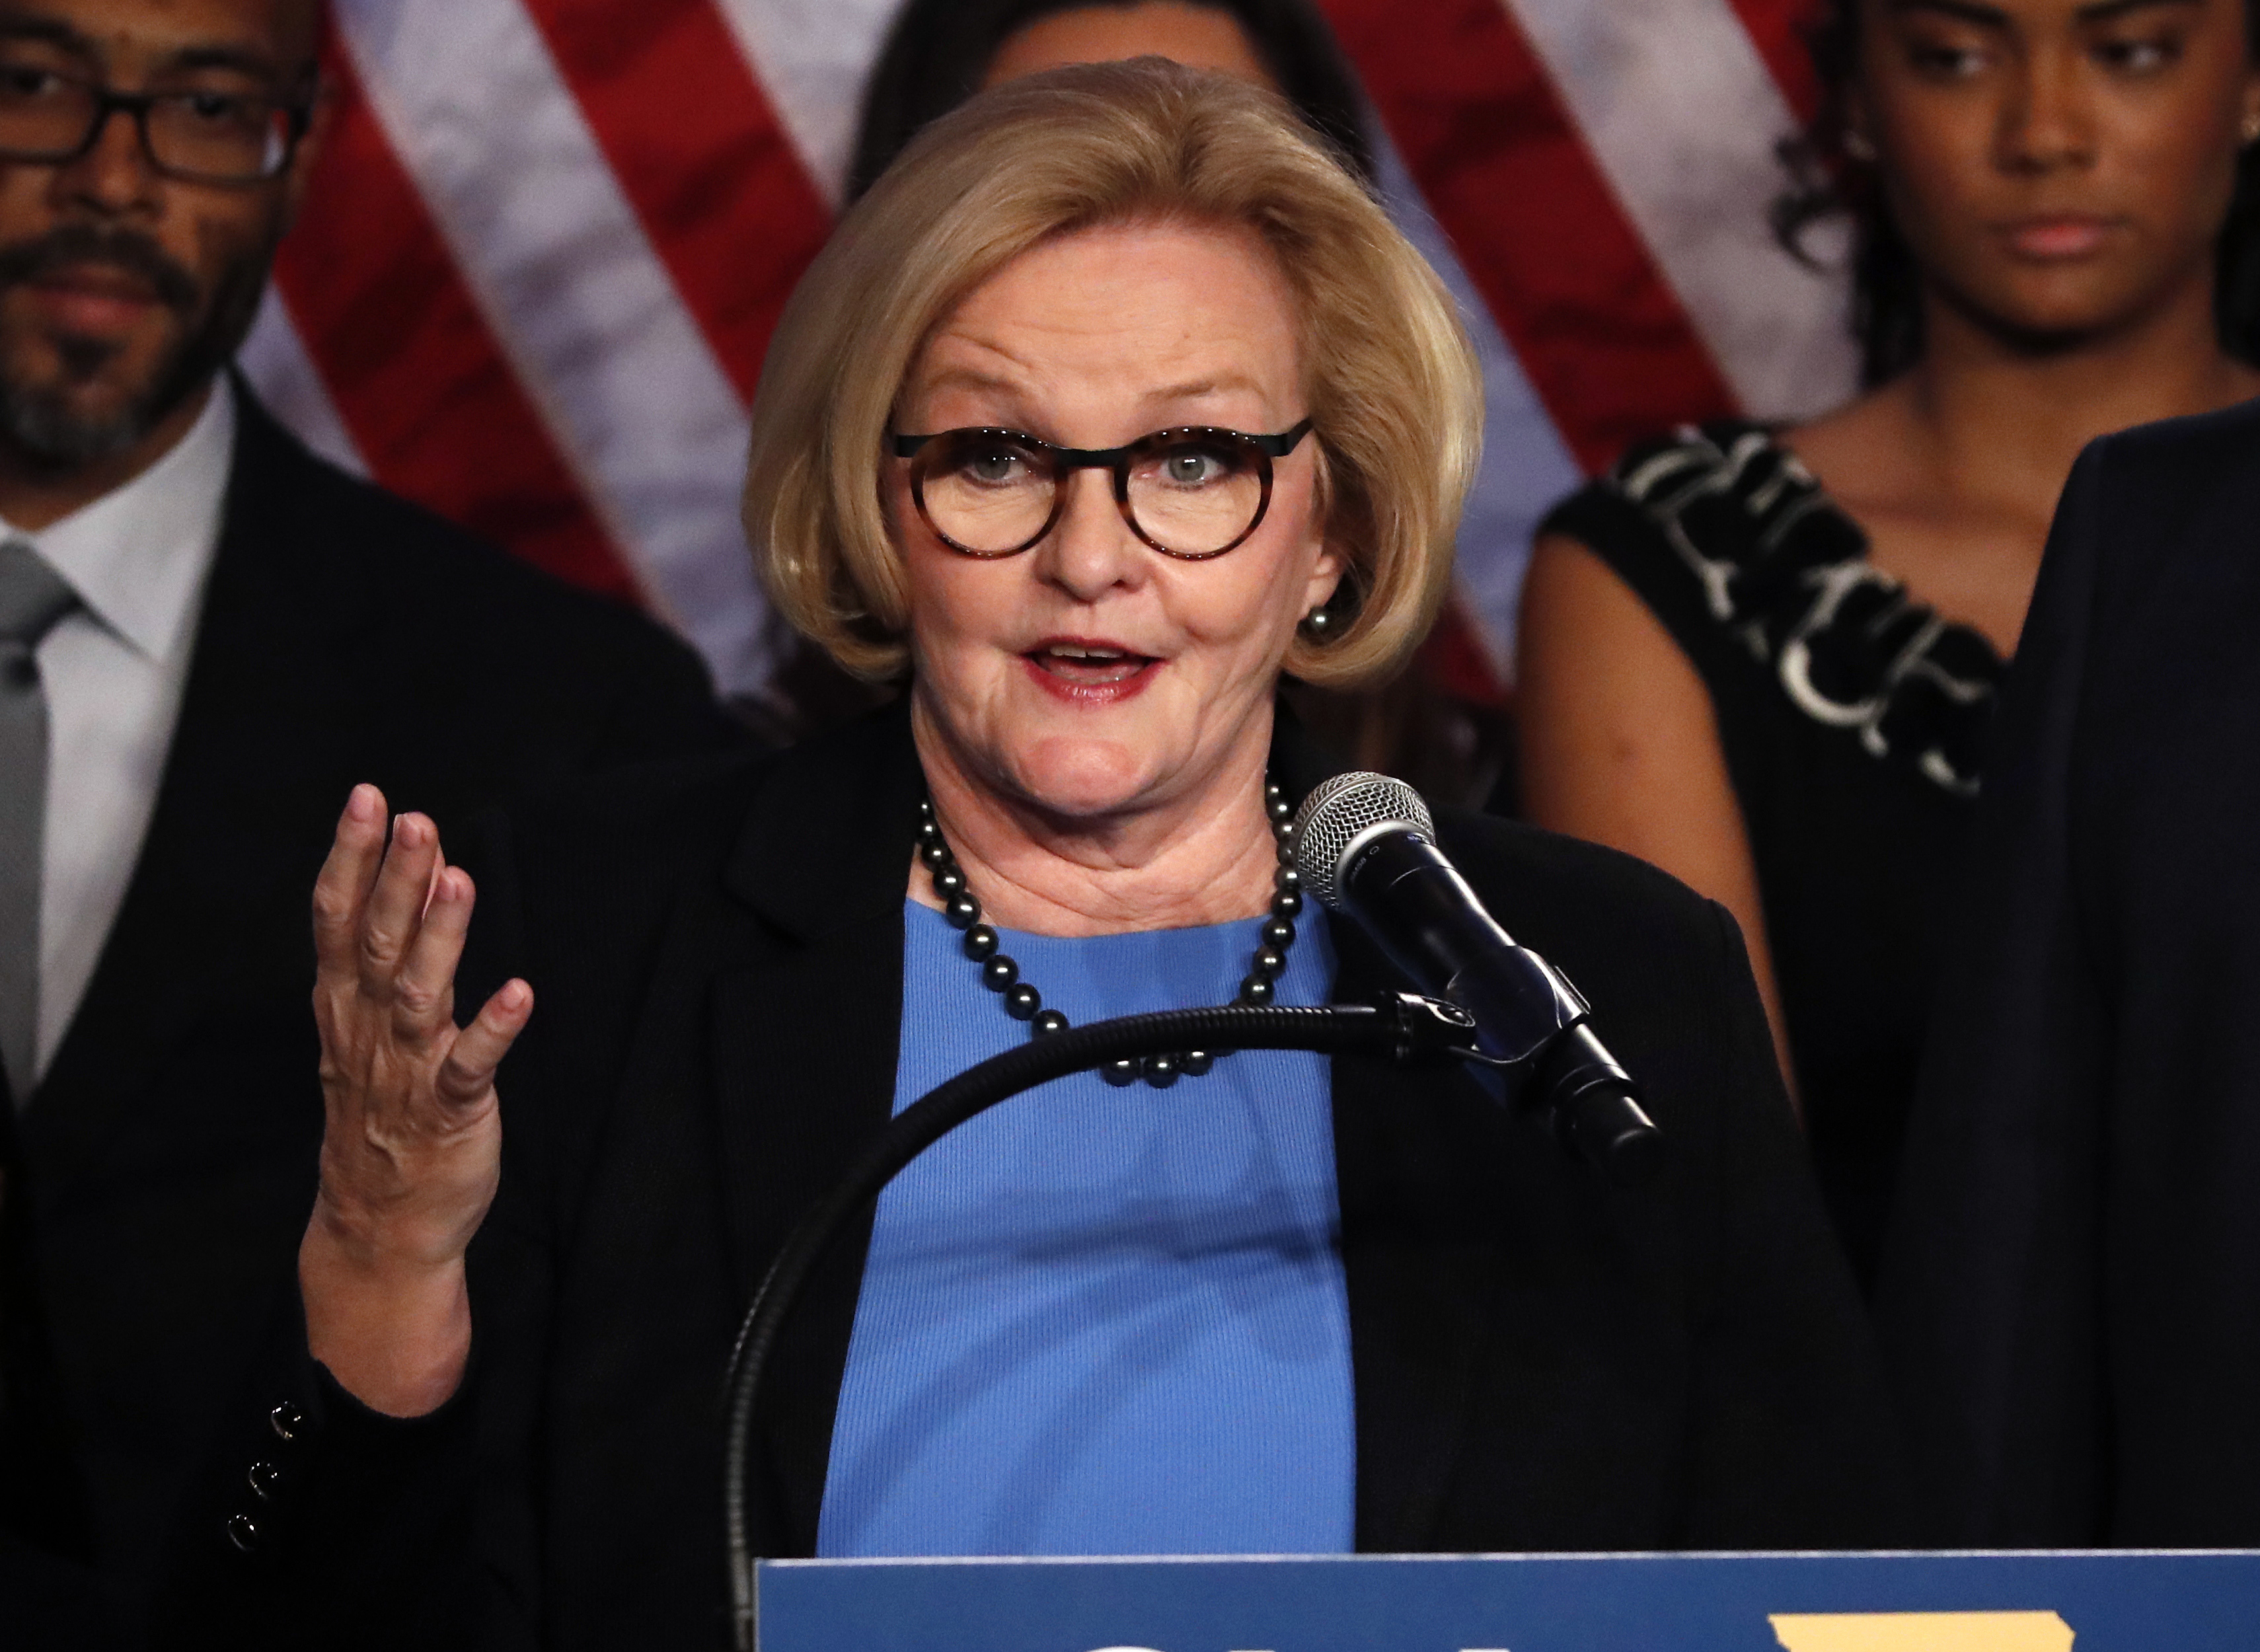 Sen. Claire McCaskill, D-Mo., delivers a concession speech Tuesday, Nov. 6, 2018, in St. Louis. McCaskill has conceded defeat to Republican challenger Josh Hawley in her bid for a third term. (AP Photo/Jeff Roberson)